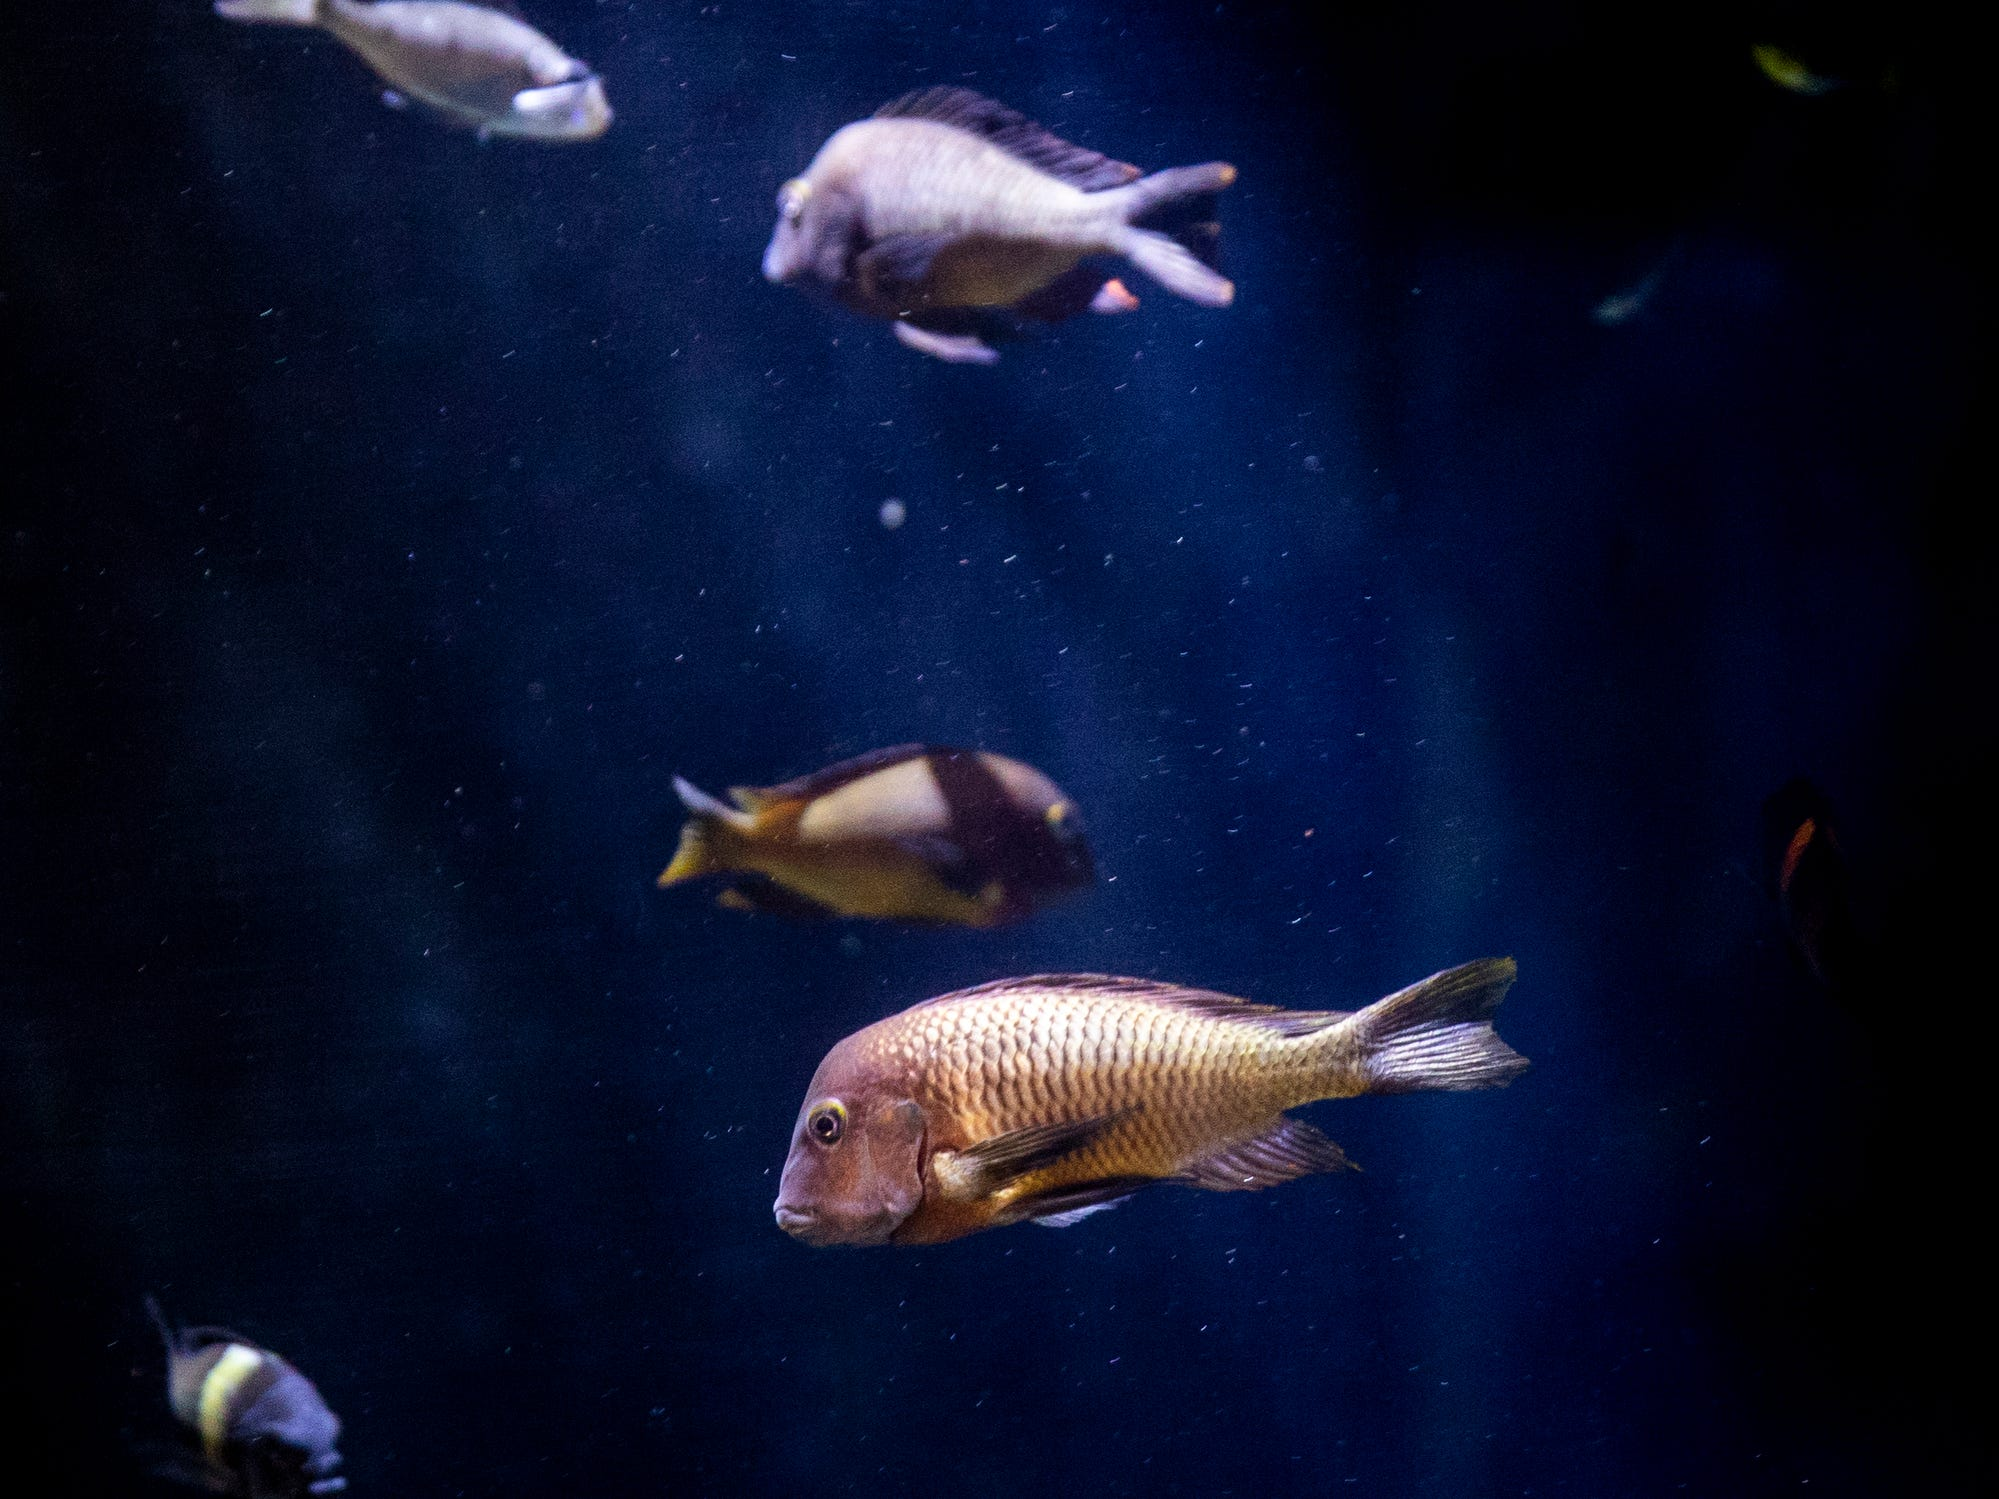 Dozens of species of plants and animals live among 13 tanks at the new Freshwater Falls exhibit at Newport Aquarium Thursday, April 11, 2019 in Newport, Ky.